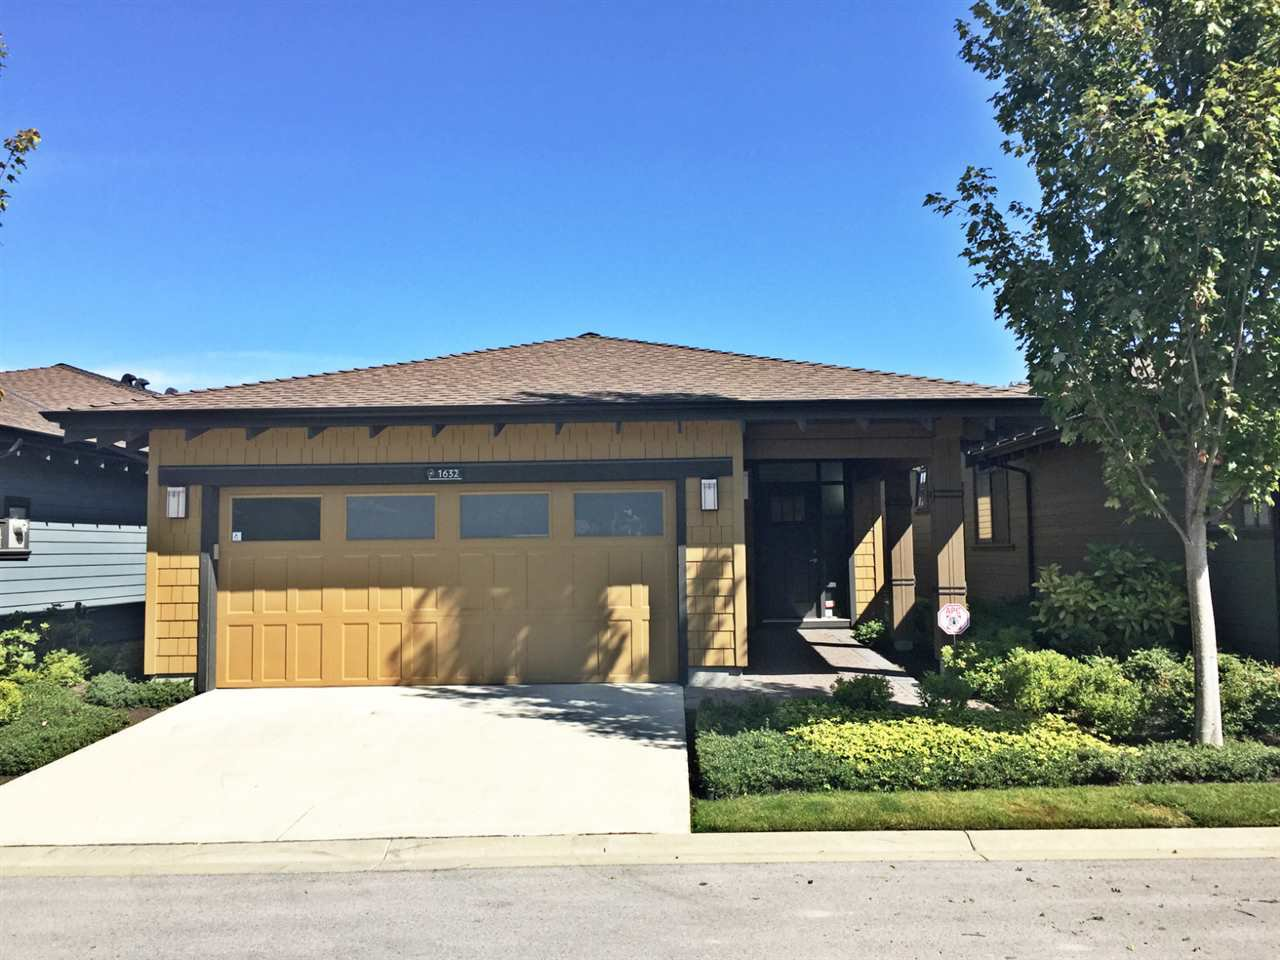 "Main Photo: 1632 BIRCH SPRINGS Lane in Tsawwassen: Cliff Drive House for sale in ""Tsawwassen Springs"" : MLS®# R2199003"